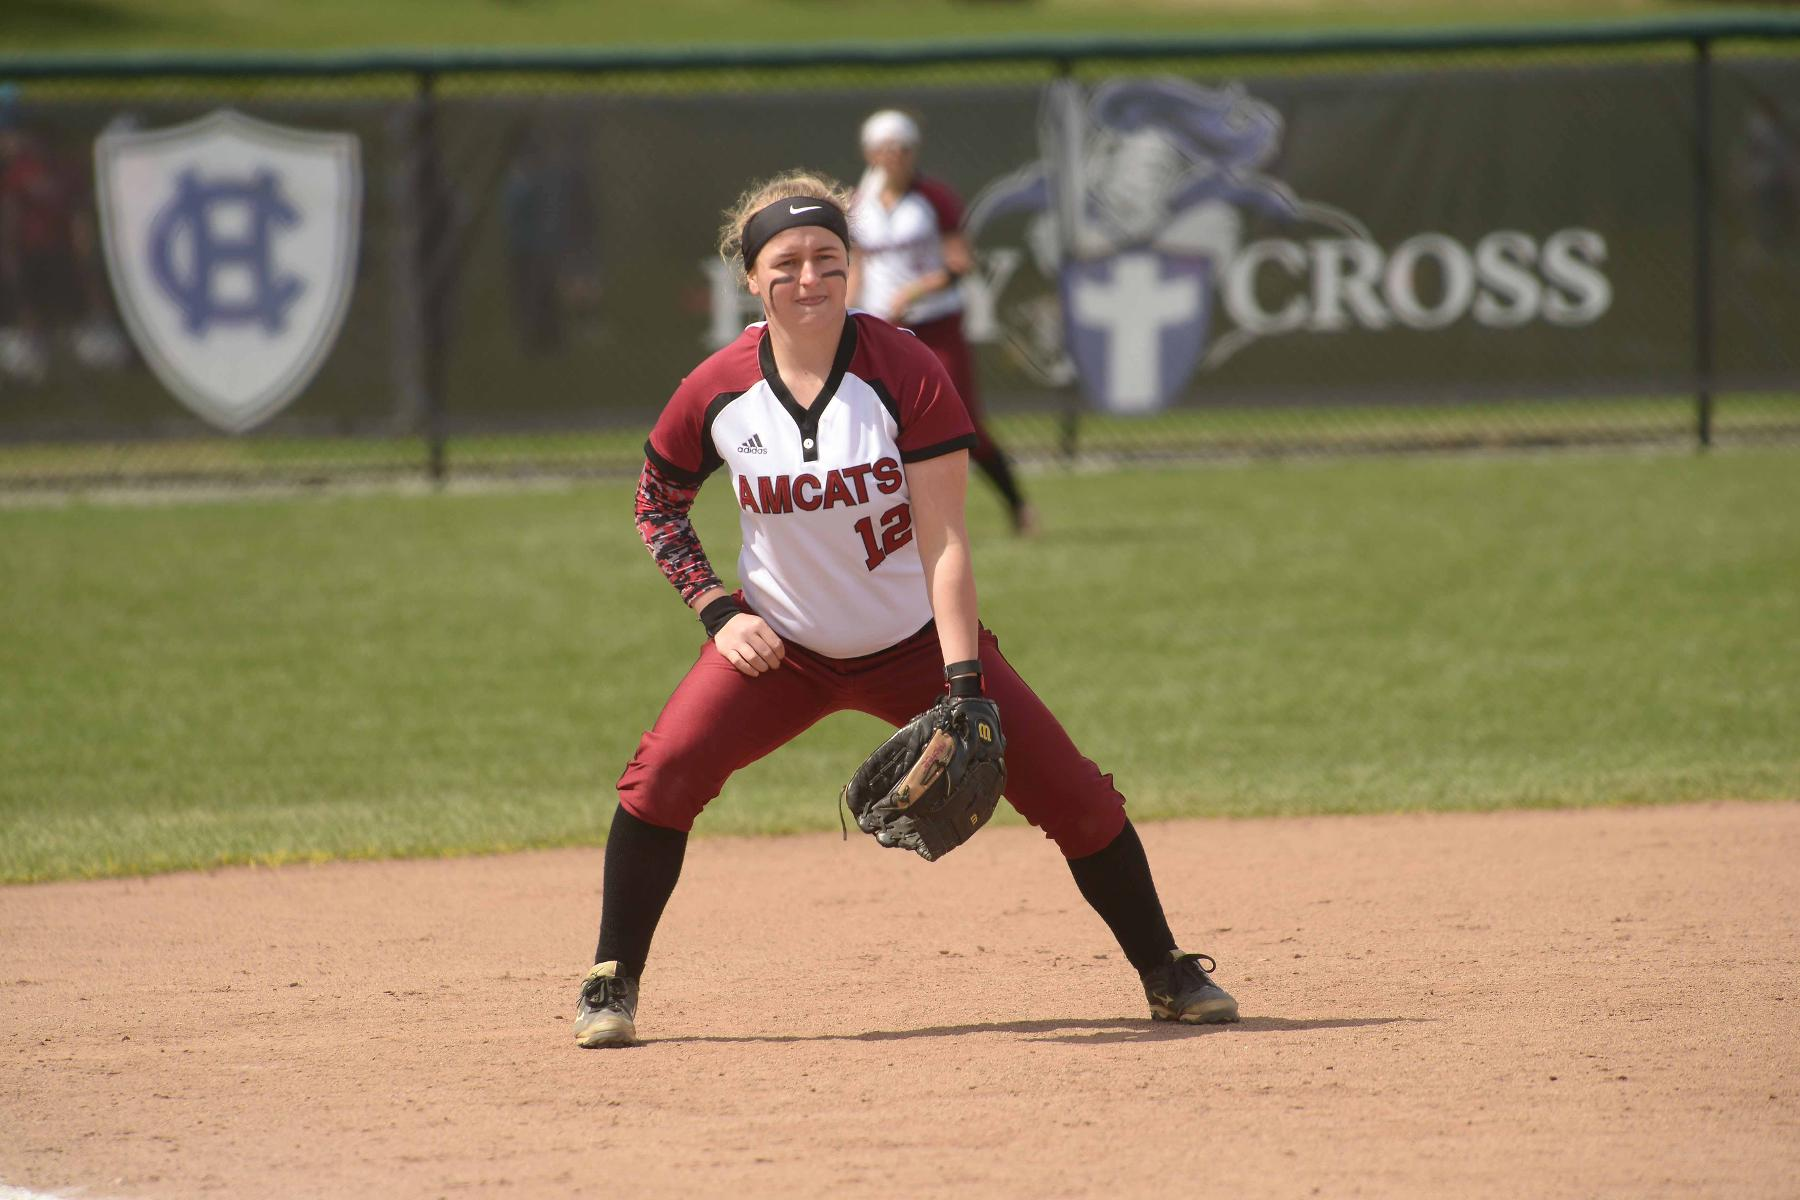 AMCATS Split GNAC Doubleheader with Cadets